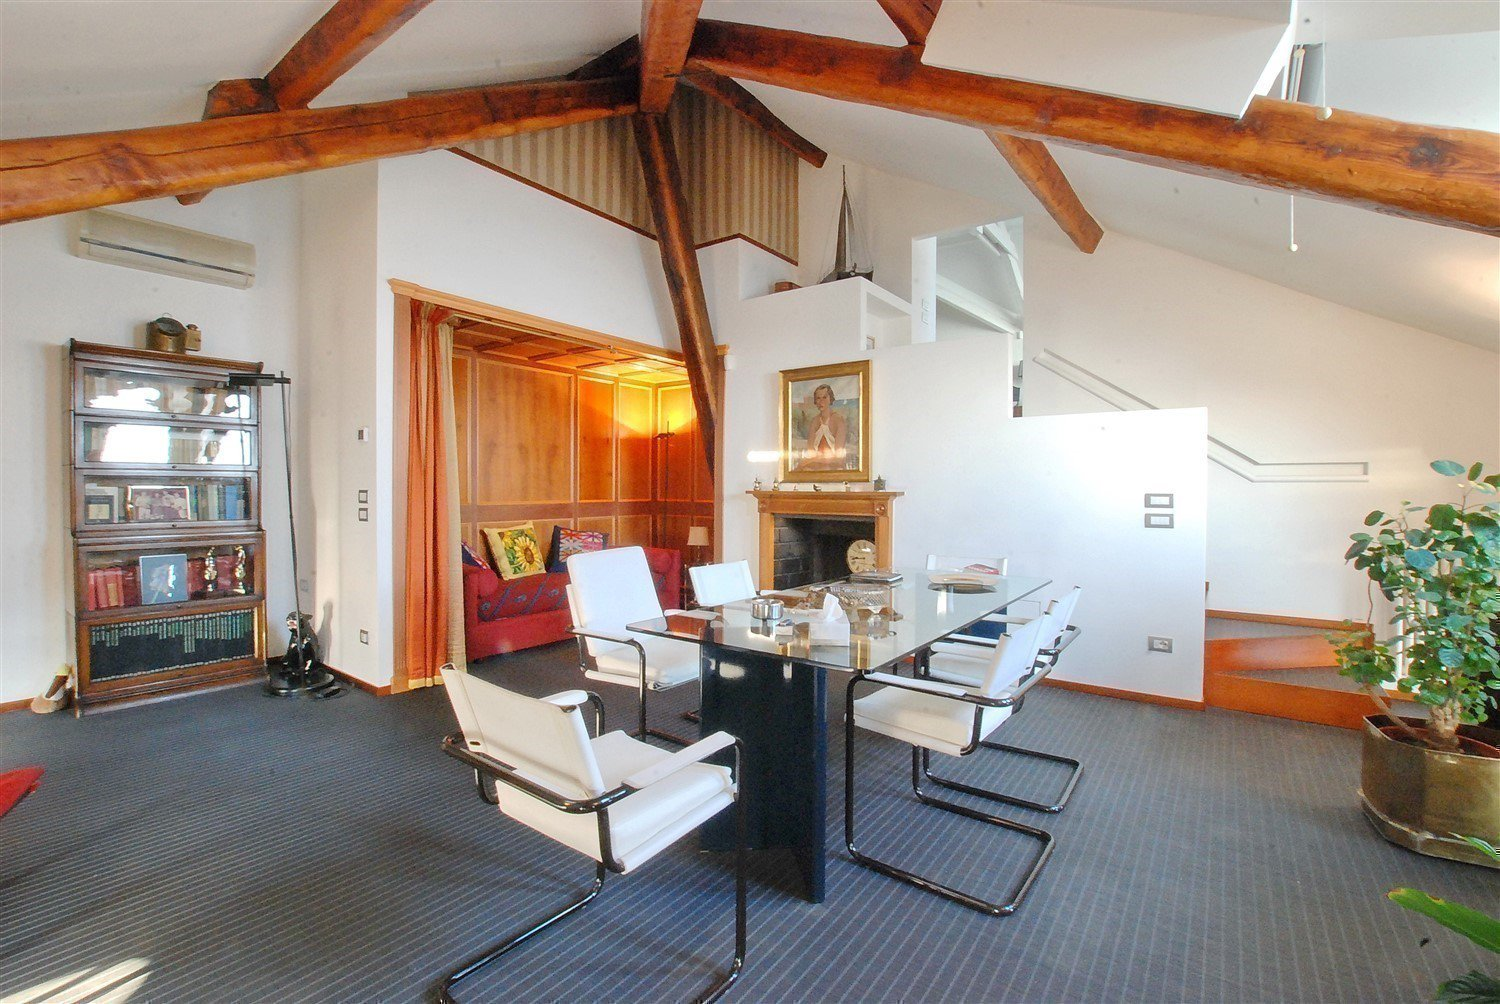 Apartment for sale in Baveno, inside a historic lake front villa - dining room